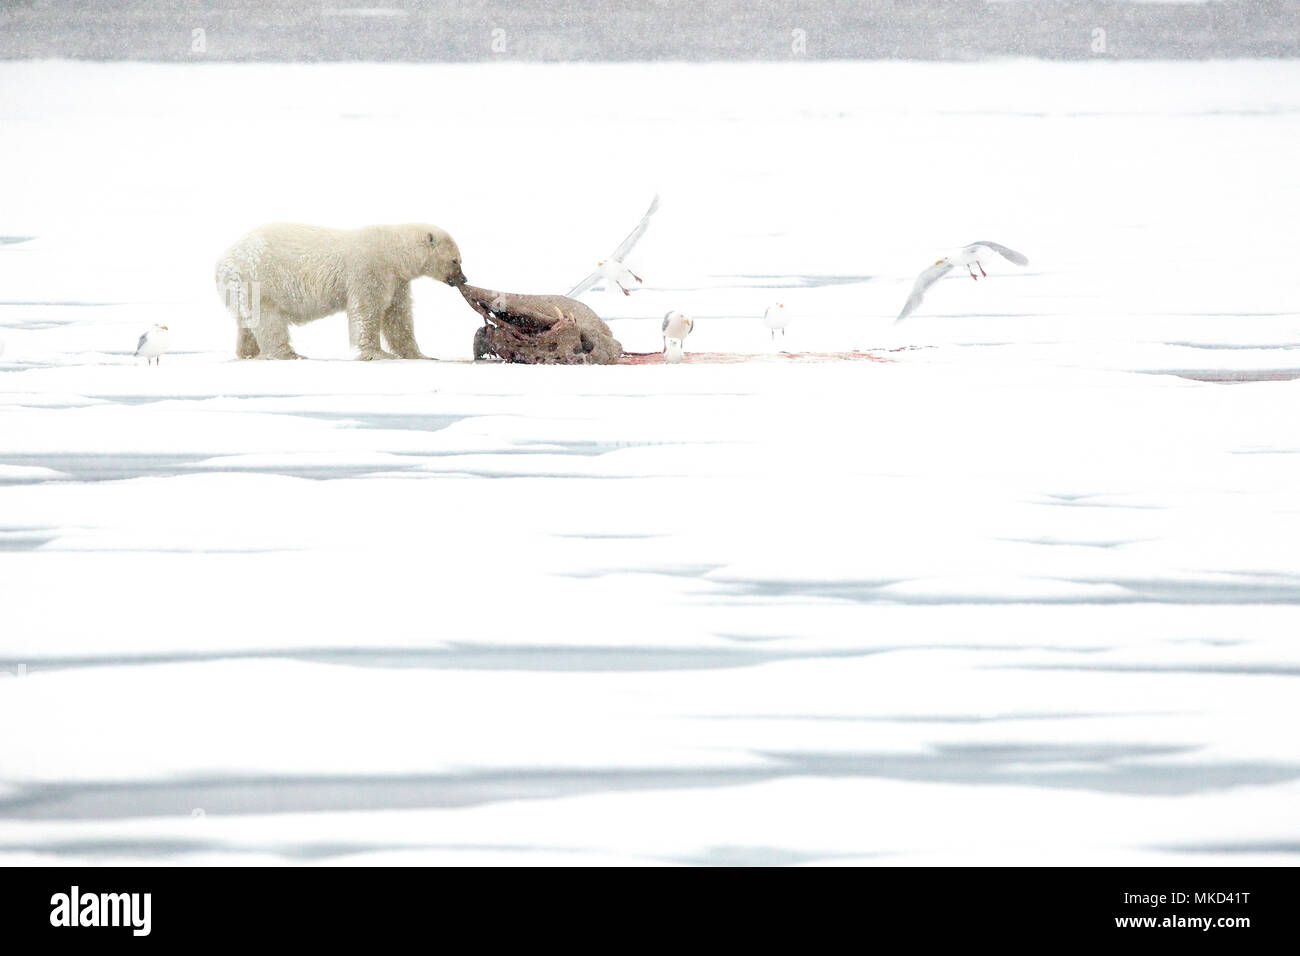 Polar bear (Ursus maritimus) eating a walrus (Odobenus rosmarus), on the ice, Spitsbergen, Svalbard, Norwegian archipelago, Norway, Arctic Ocean - Stock Image